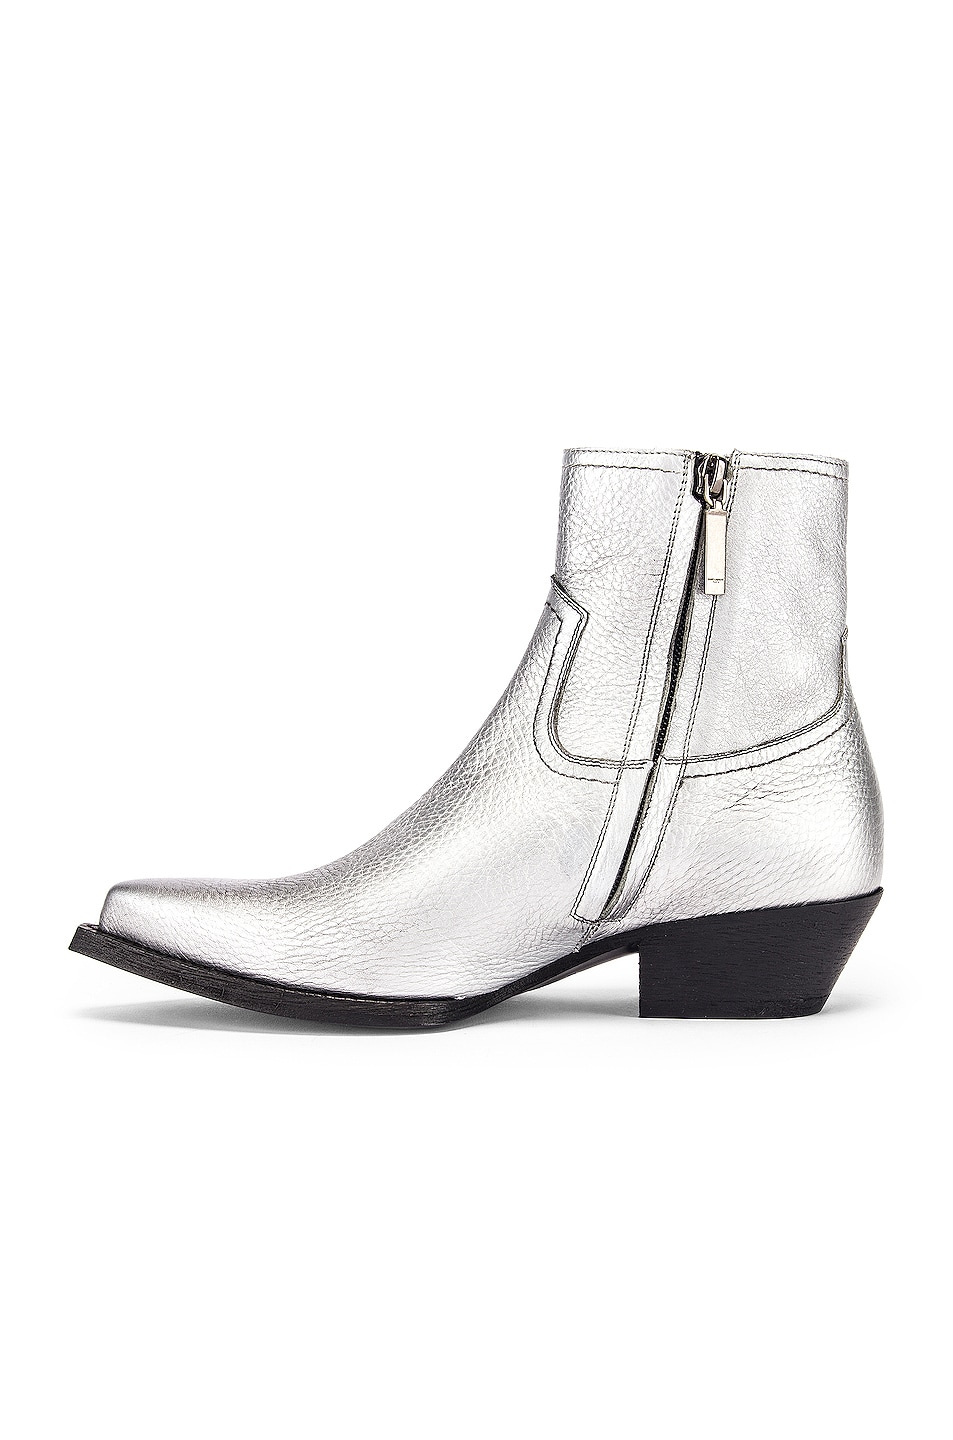 Image 5 of Saint Laurent Lukas Ankle Boots in Silver